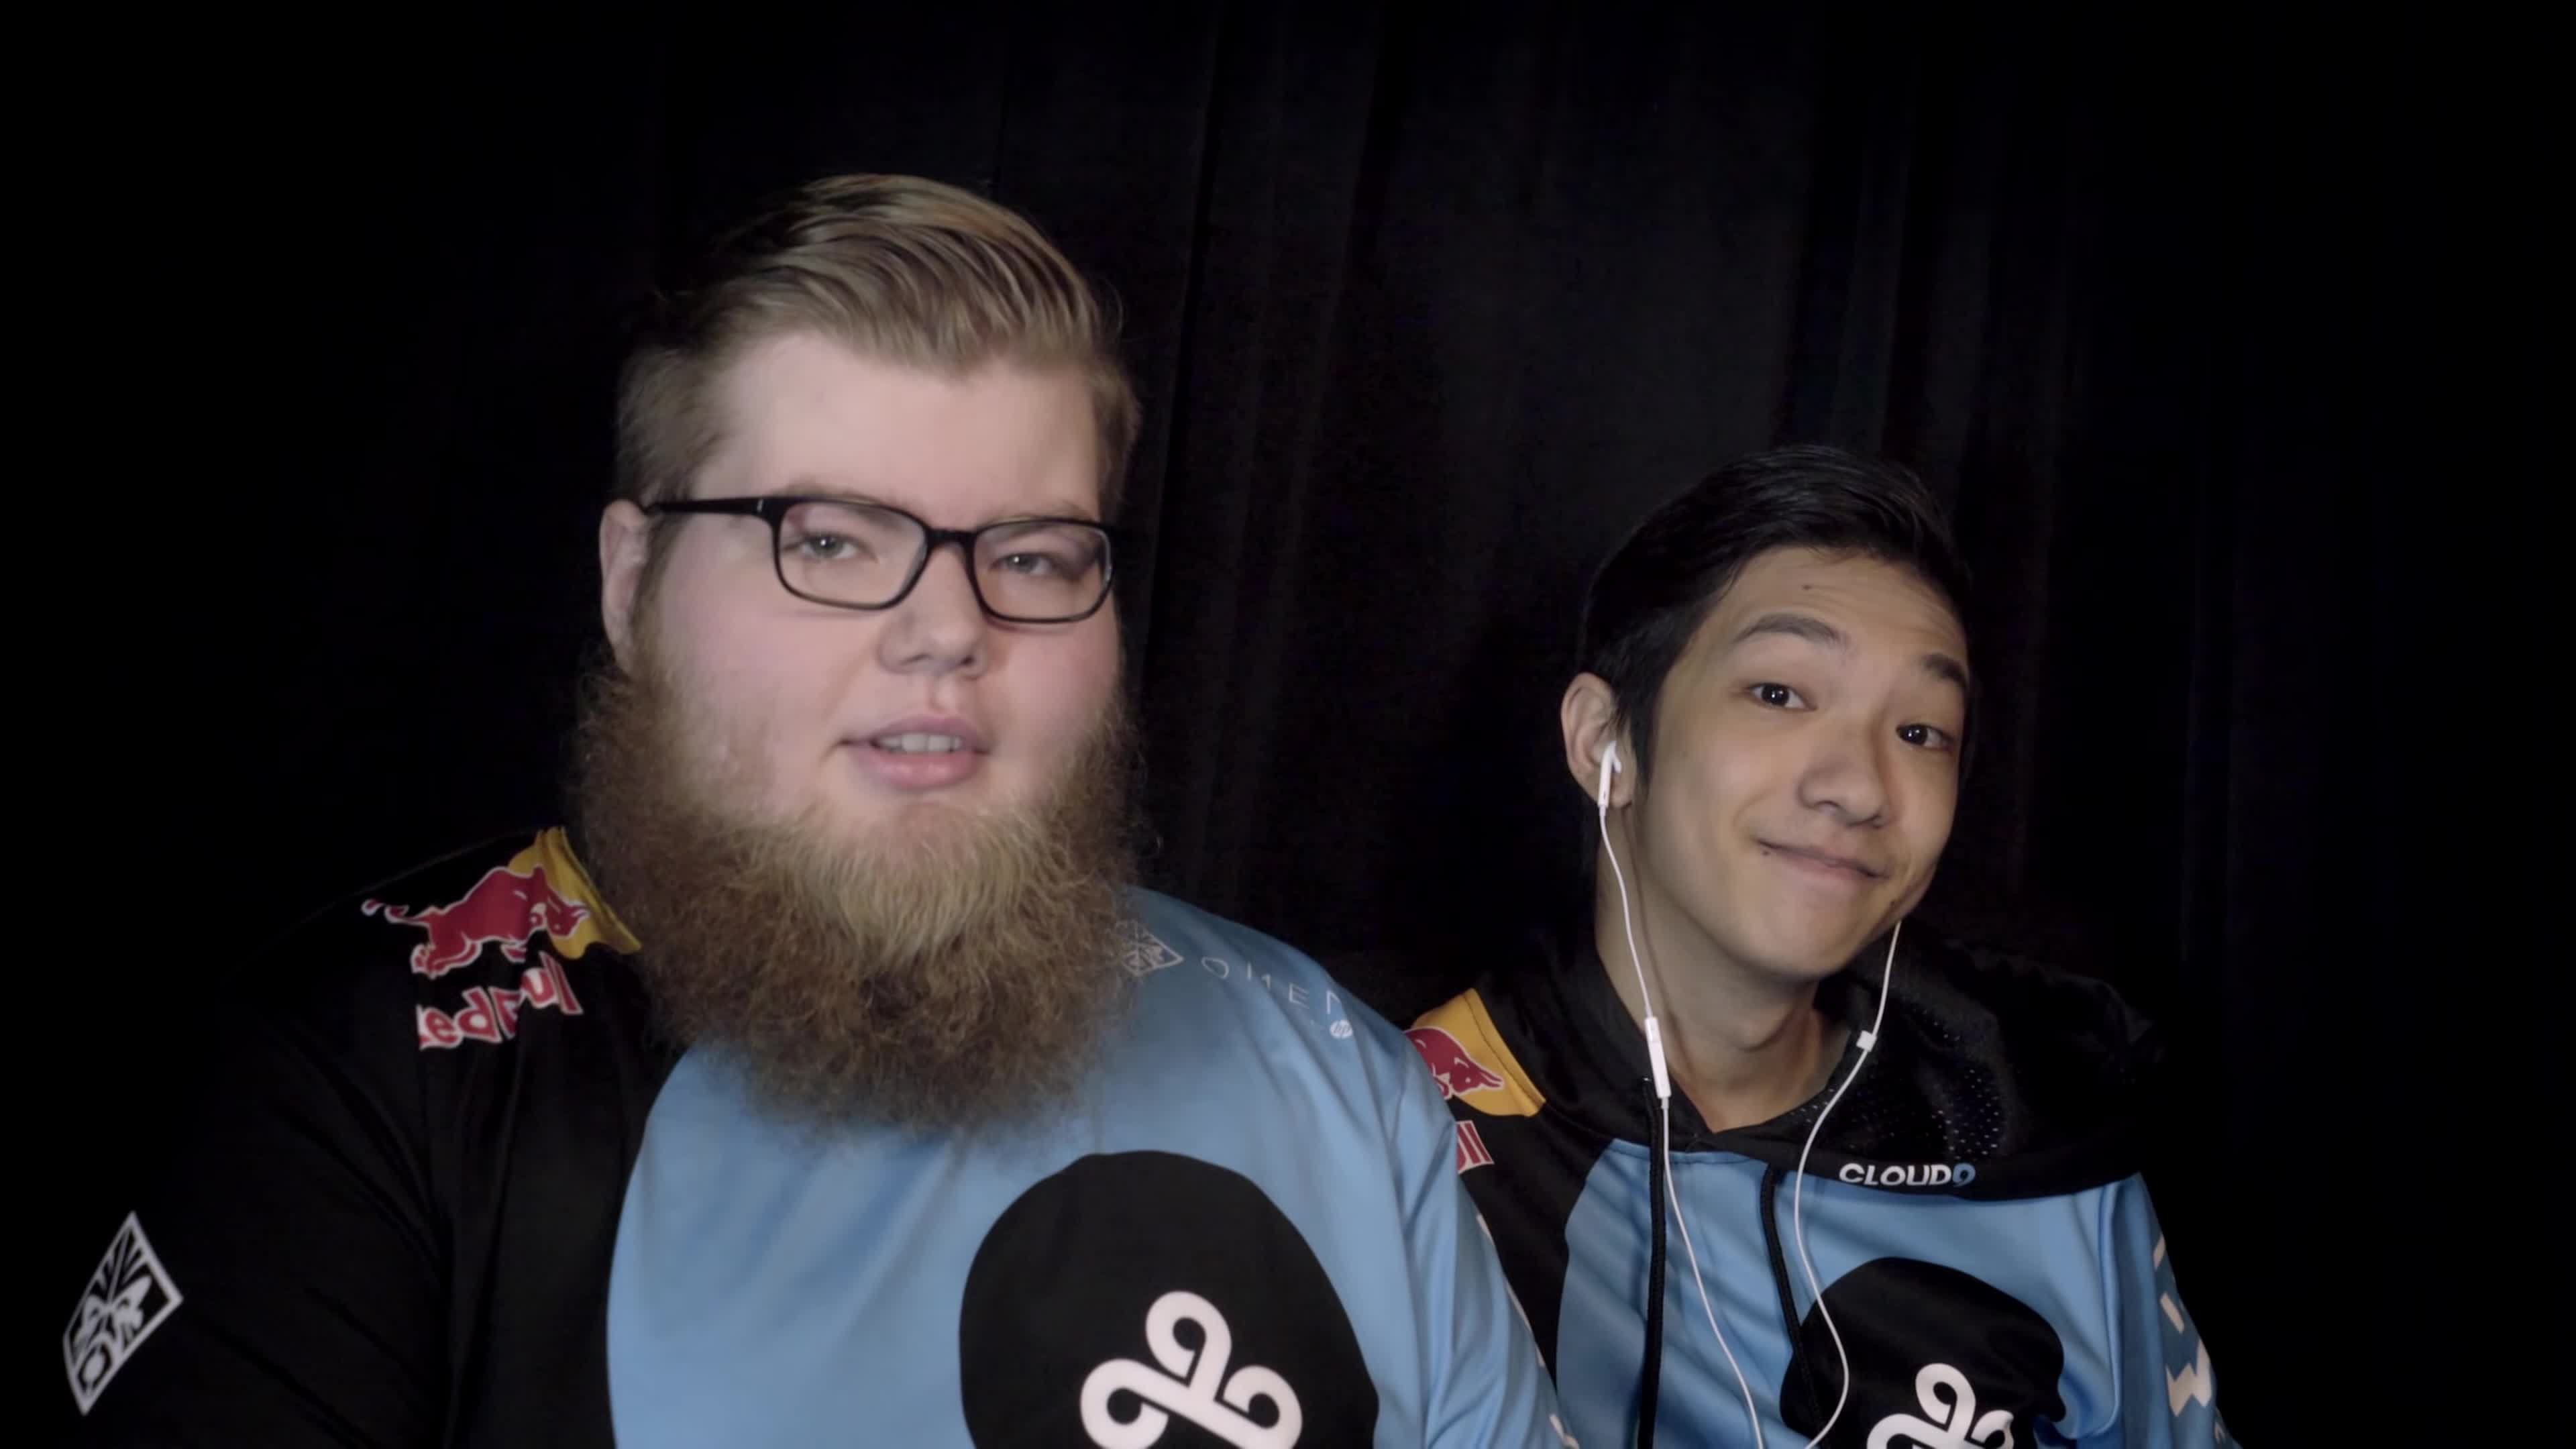 Andy Ta, Dennis Johnsen, Eric Ritchie, Licorice, Reapered, Smoothie, Sneaky, Svenskeren, Zachary Scuderi, On Cloud9 | Pt.2: Rise GIFs